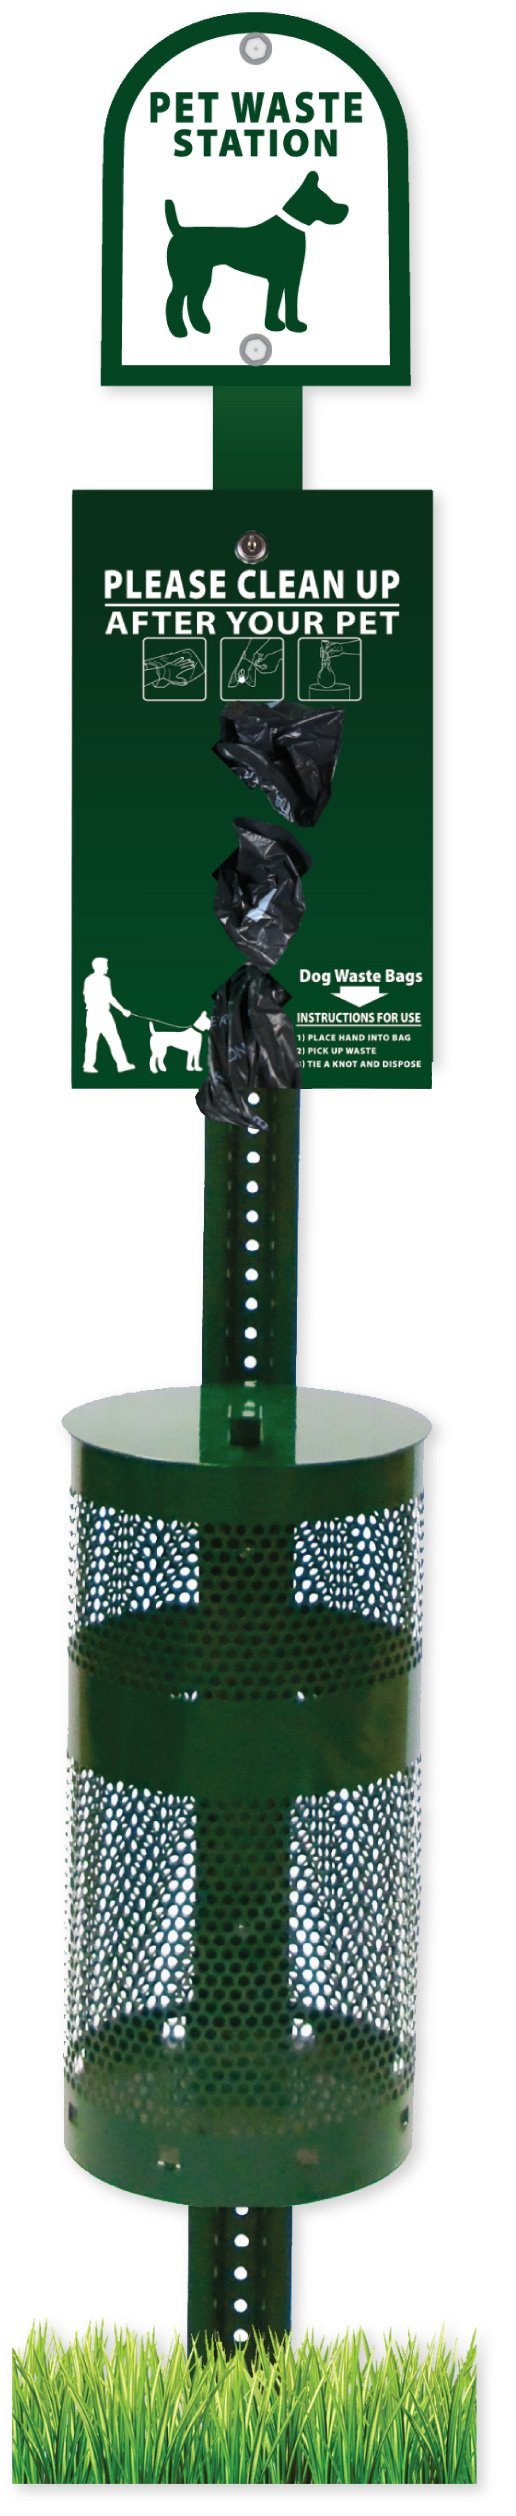 Zero Waste USA Dog Waste Station with ROLL BAG system